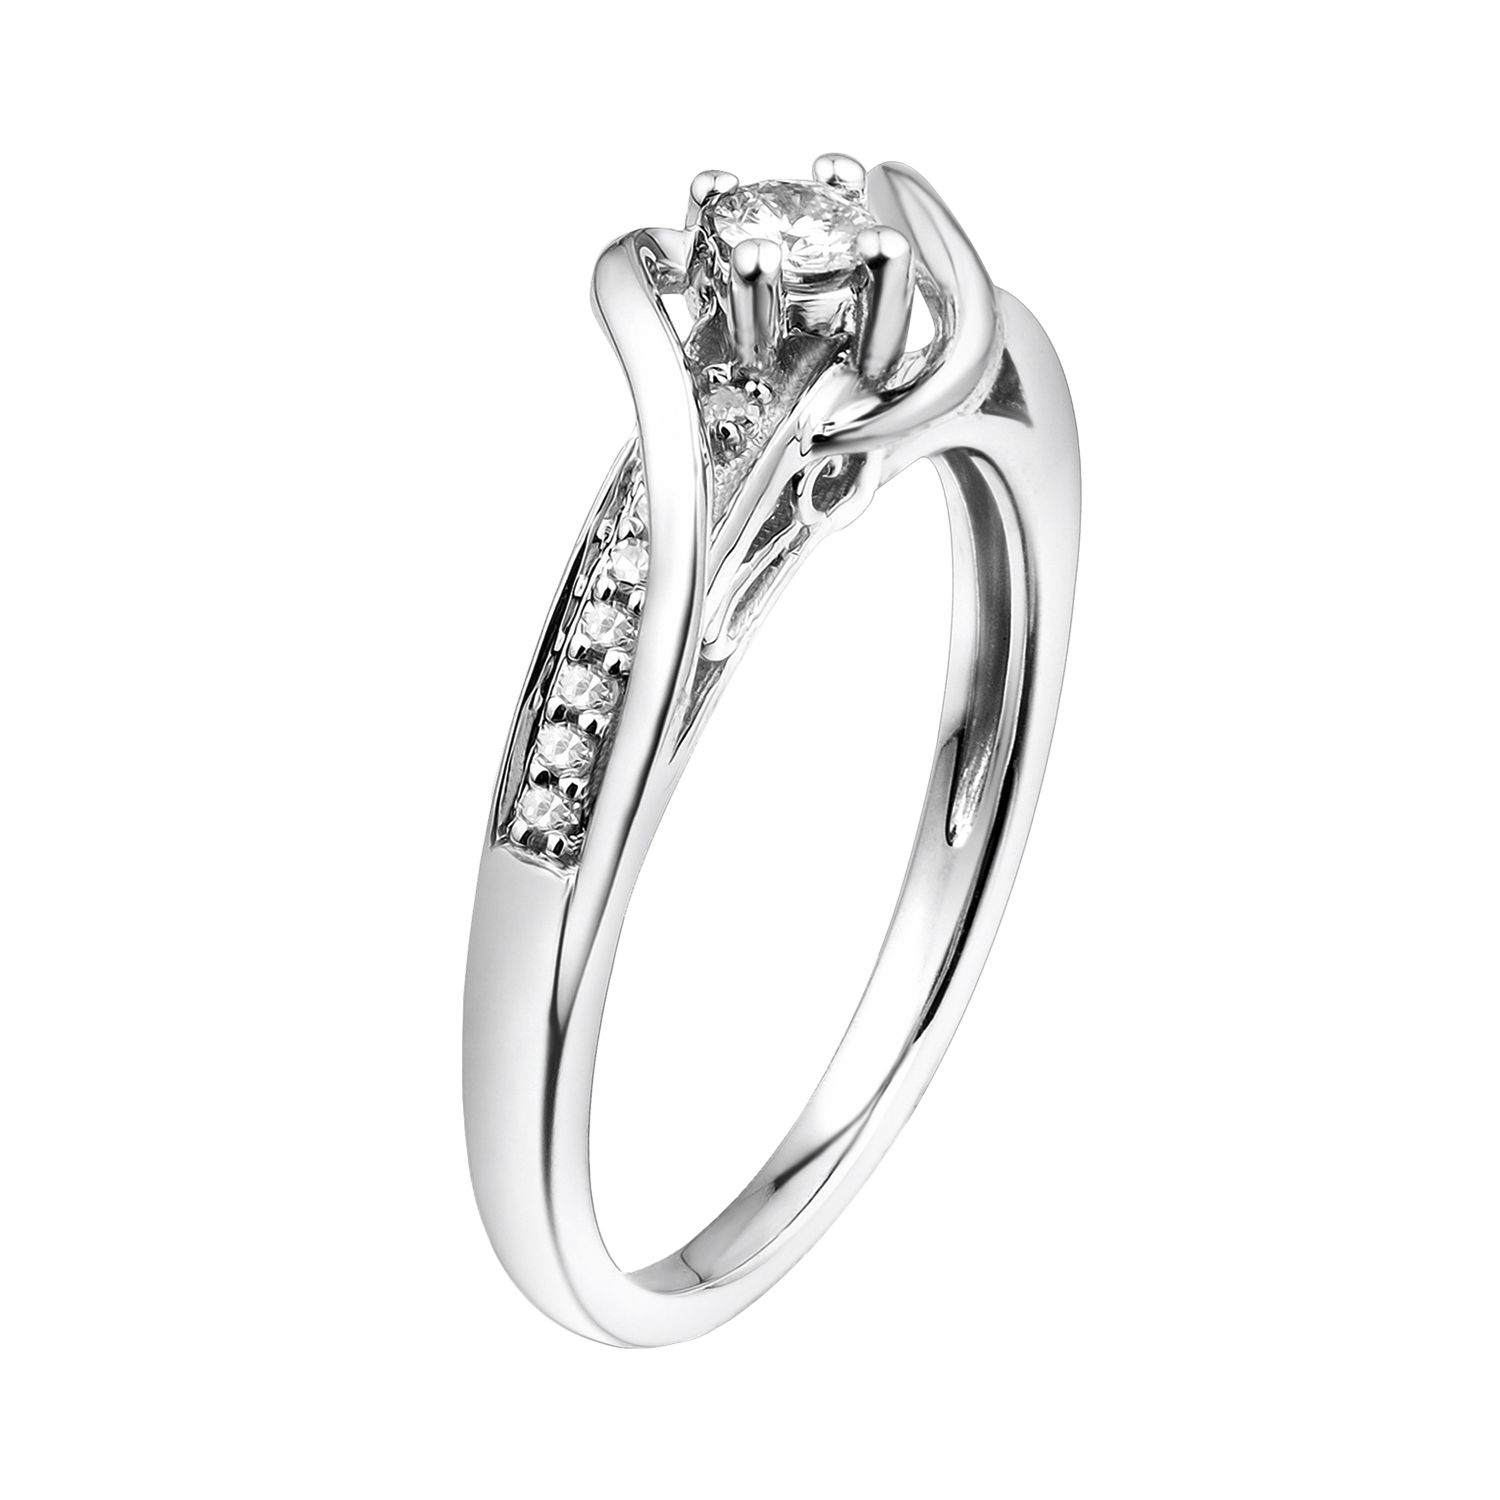 Simply Vera Vera Wang Diamond Rings